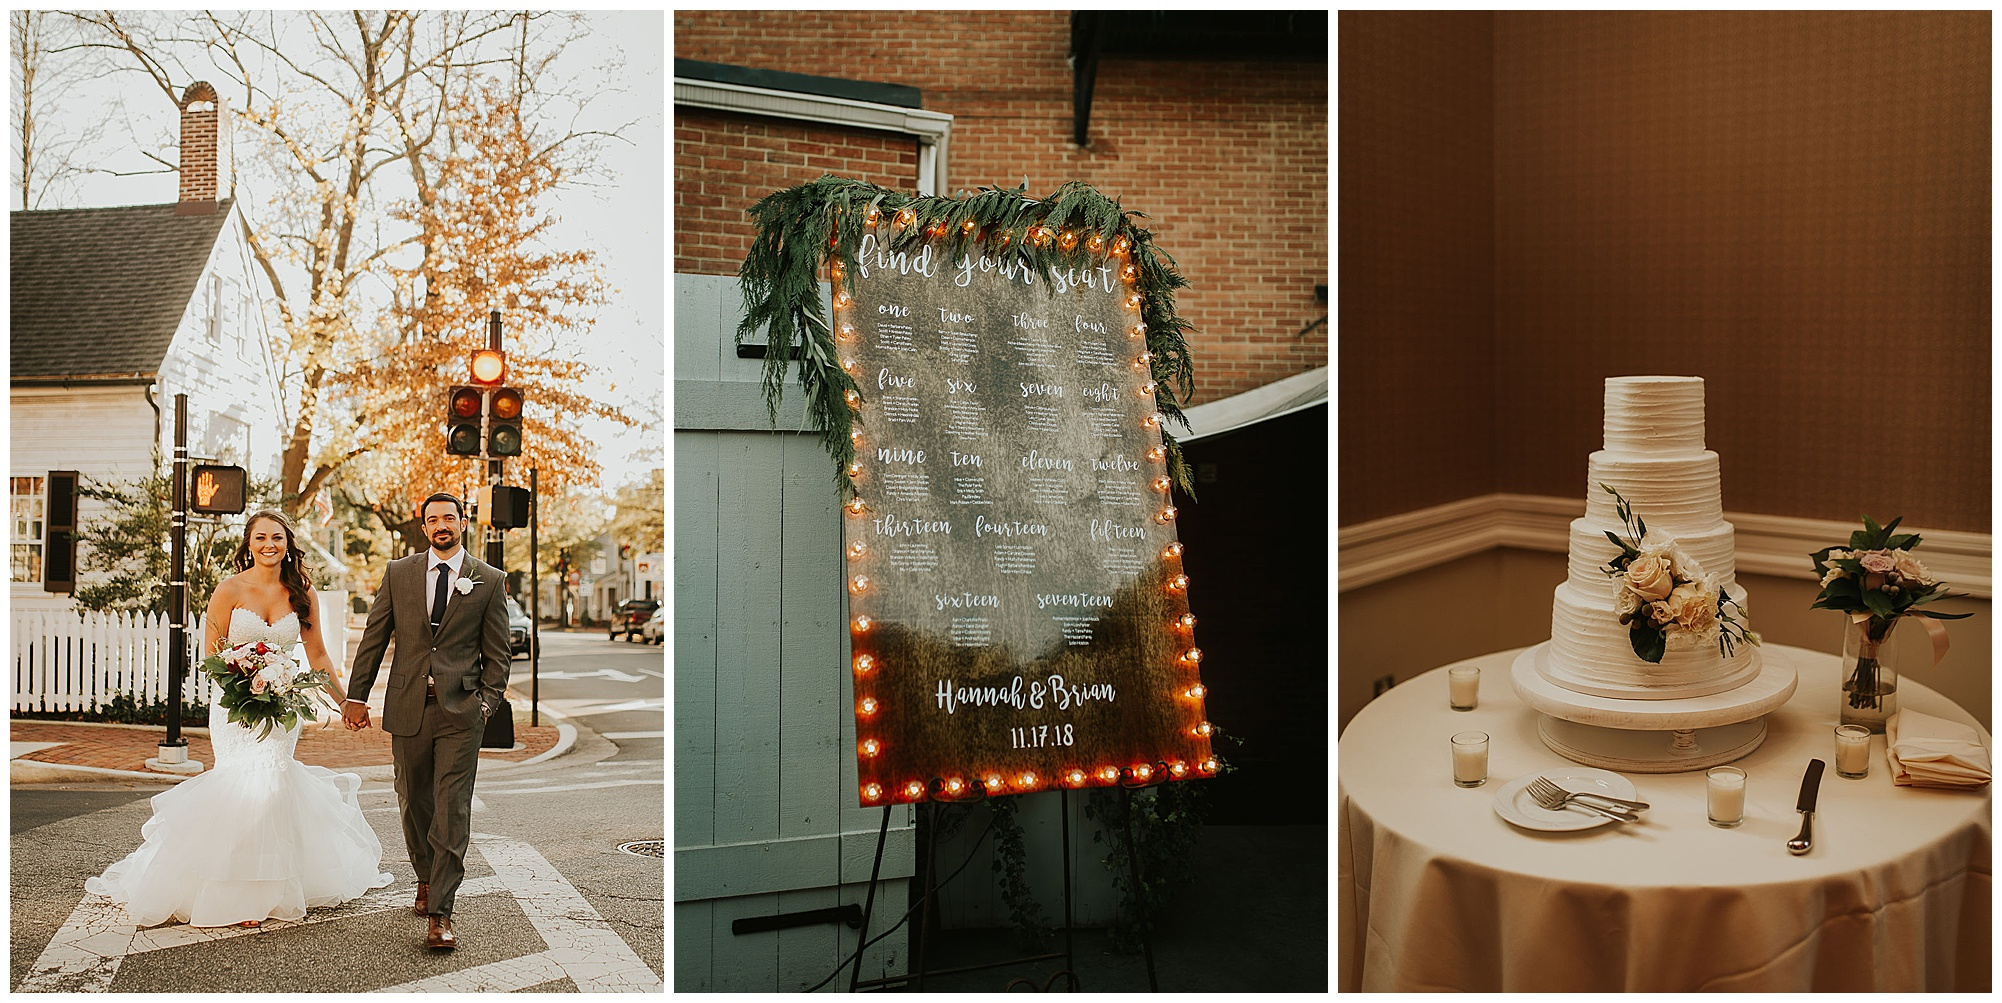 boho and romantic wedding theme style at tidewater inn venue in the fall autumn in easton maryland. white tiered wedding cake sign with lights and greenery. couple walking across the street in charming eastern shore town with red light stoplight in backdrop.